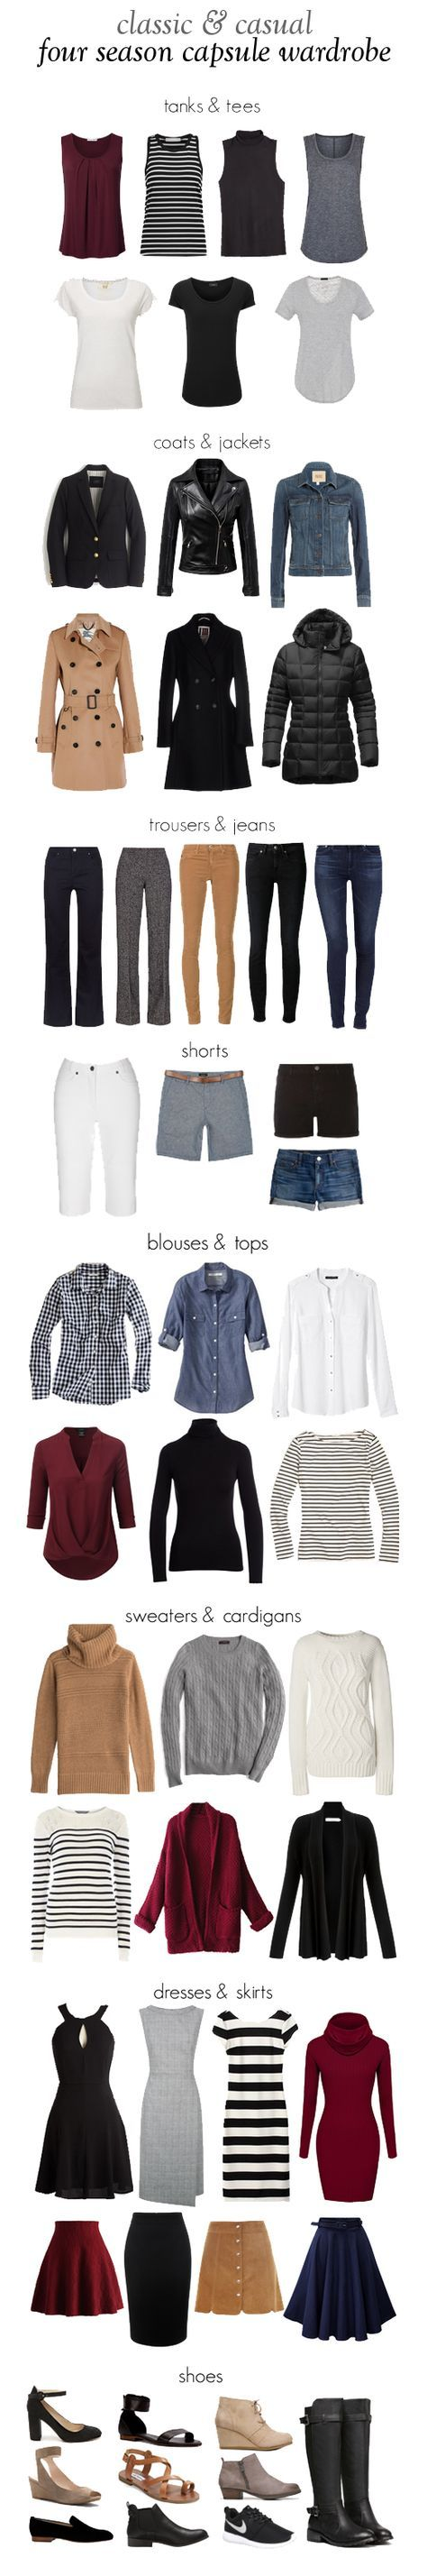 Classic, casual, year-round capsule wardrobe. Perfect for school outfits, semi-casual office attire, and day to day life.